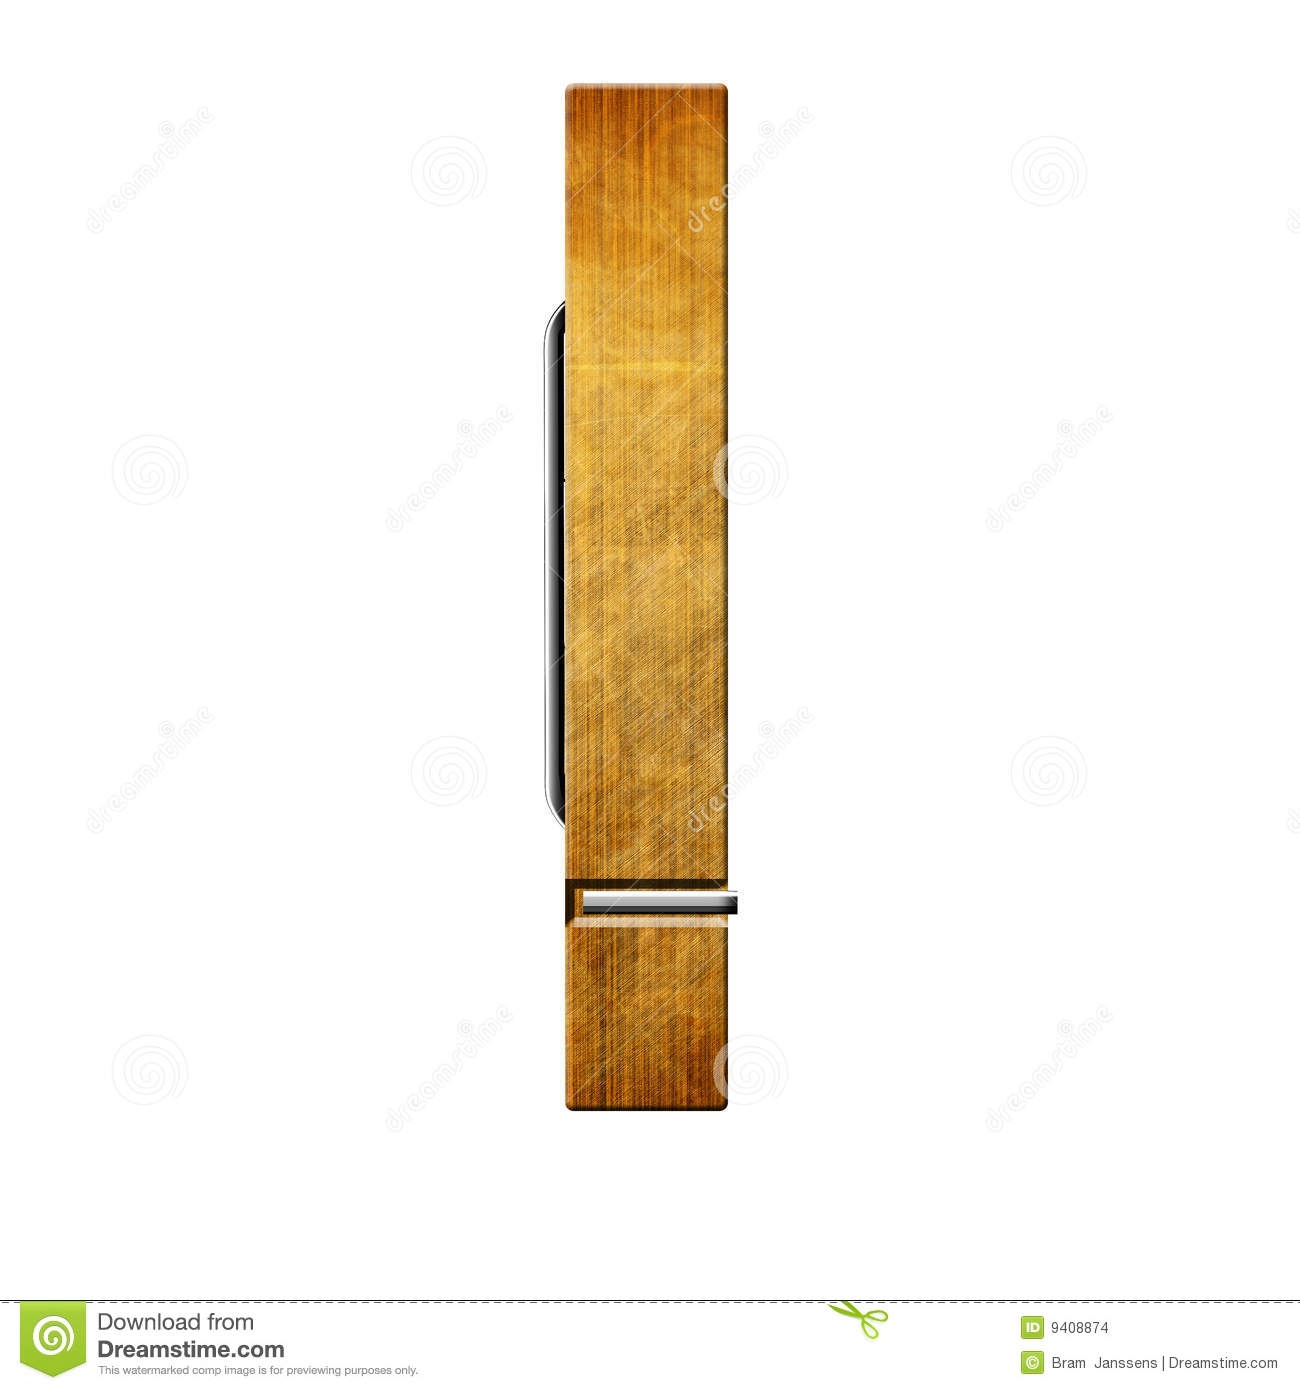 clothespin clipart wooden peg